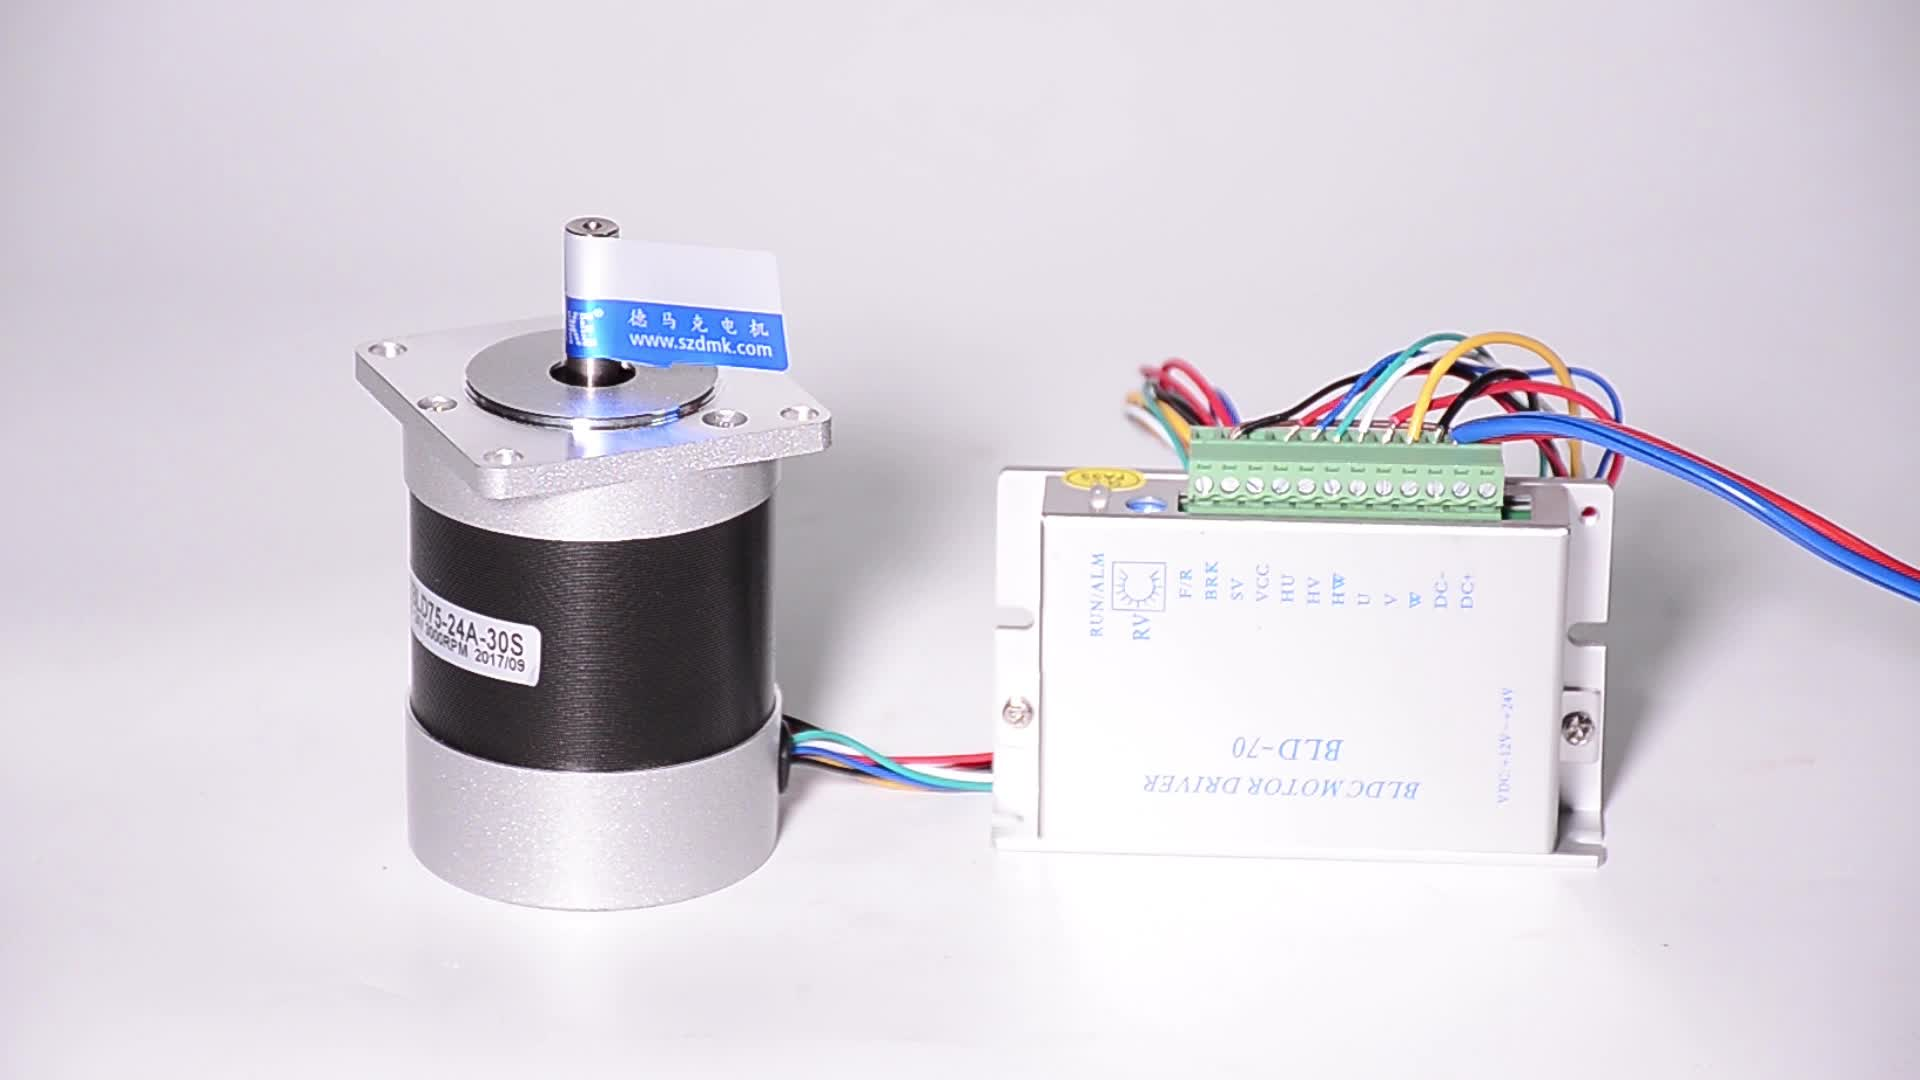 36v 100w high torque brushless dc motor 3000RPM